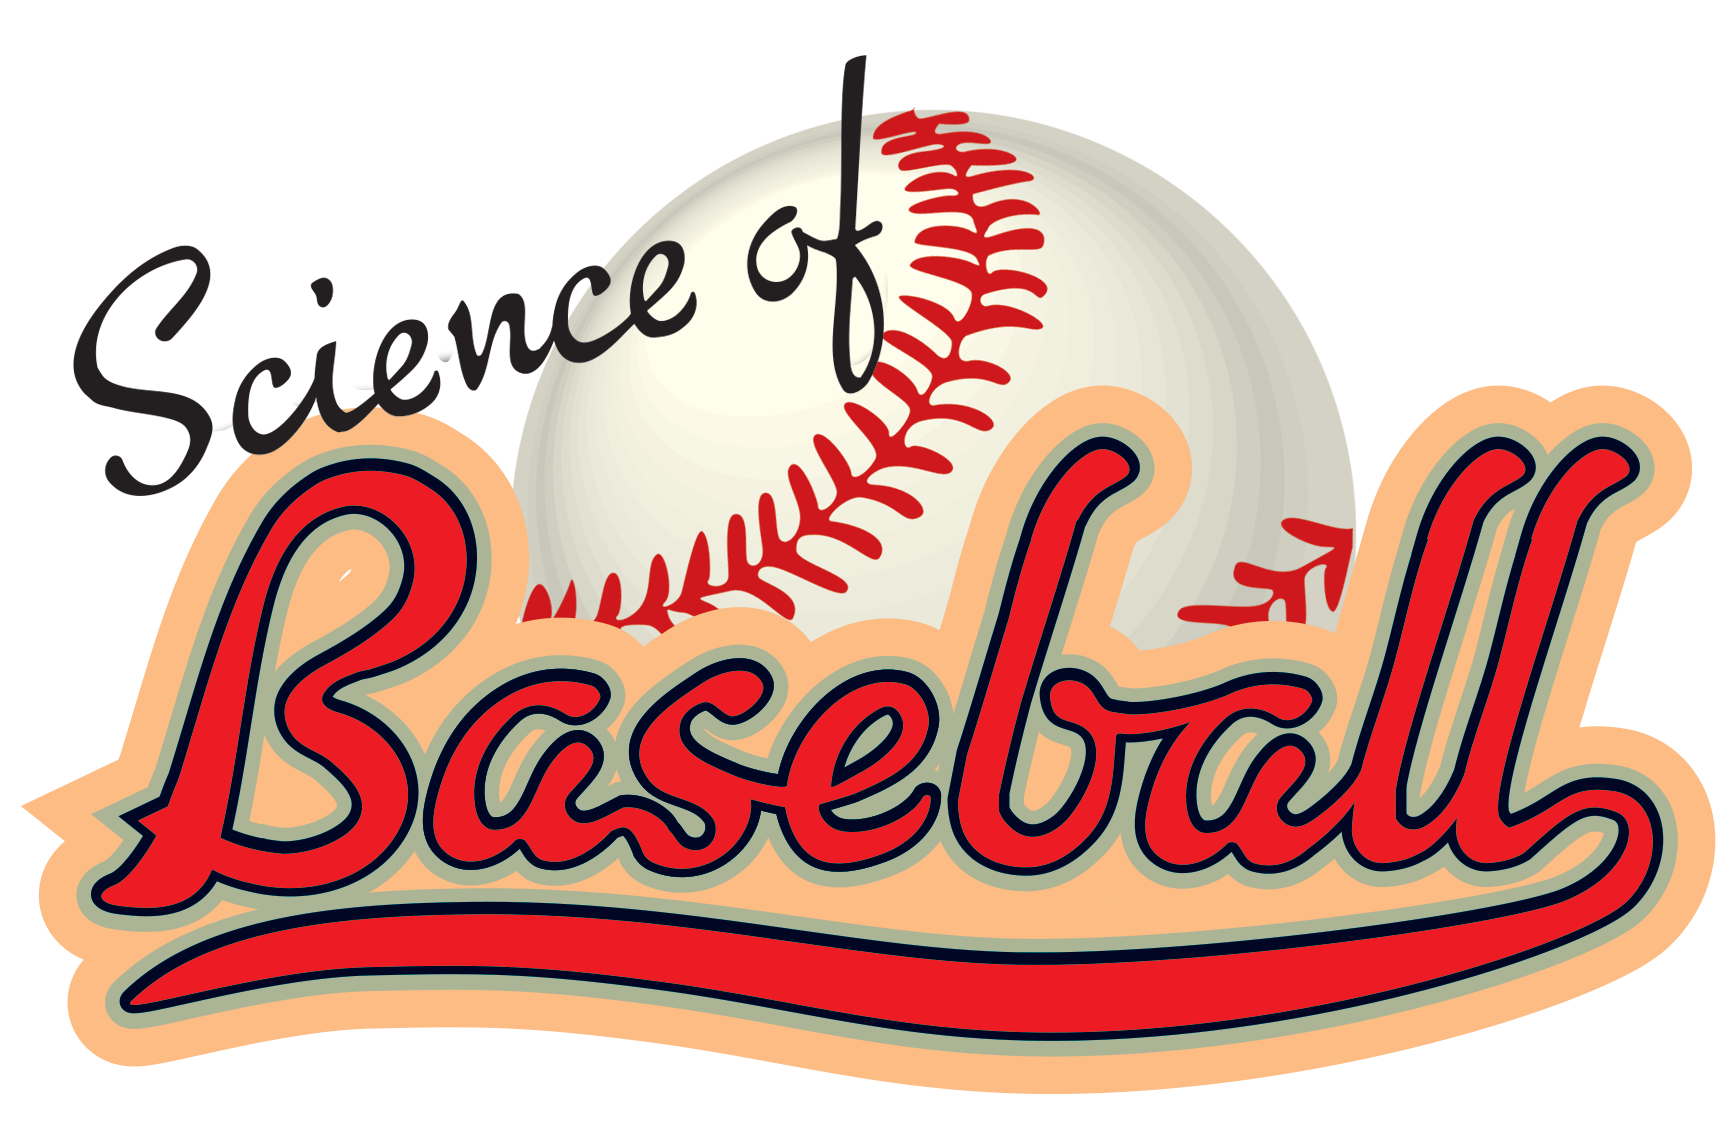 Baseball flying through the air png. Science of logo